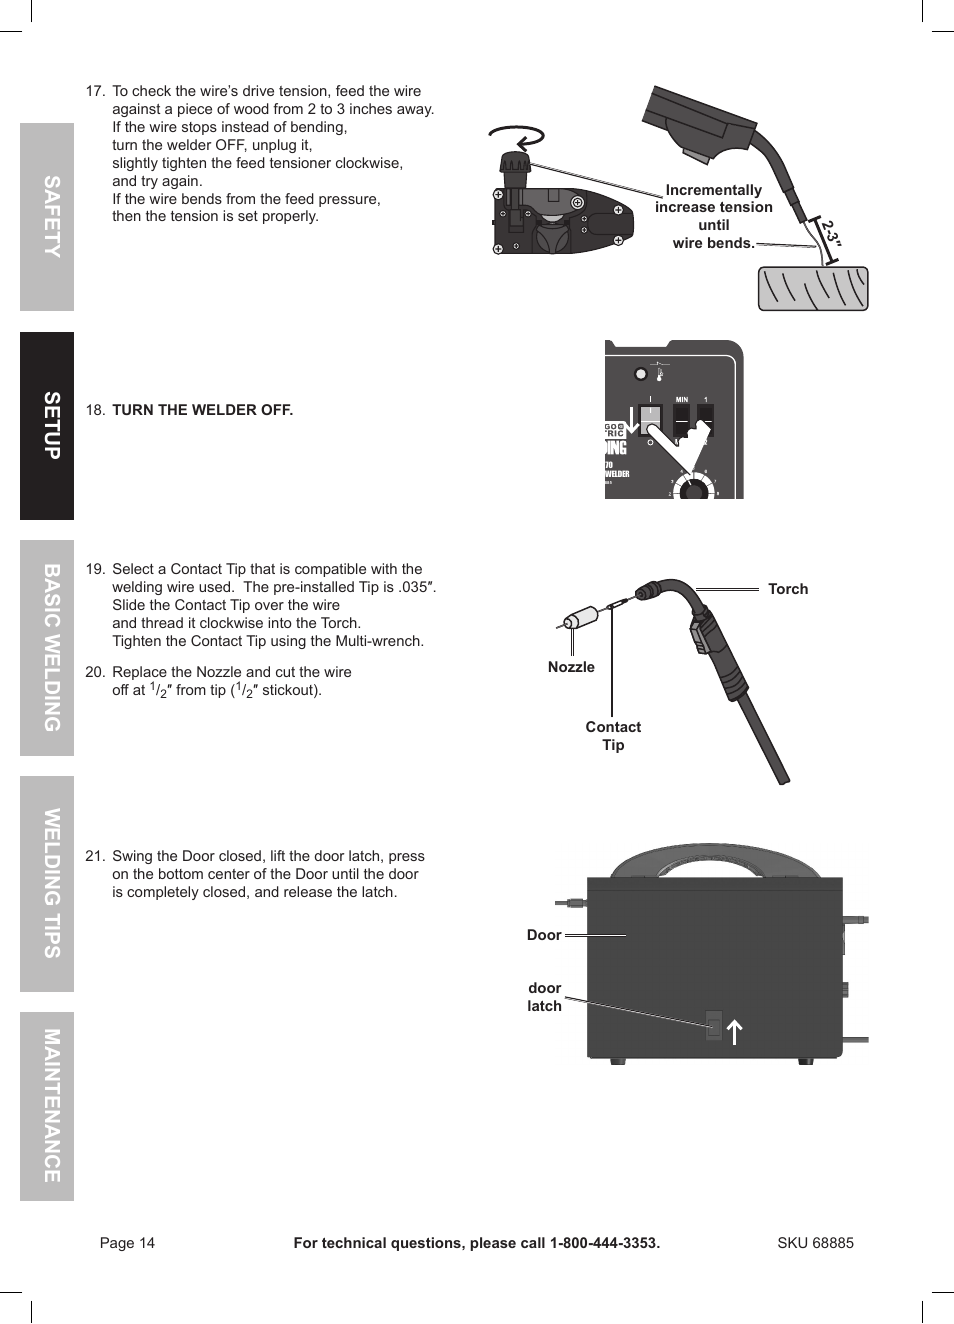 Chicago Electric Wire Feed Welder MIG 170 User Manual | Page 14 / 32